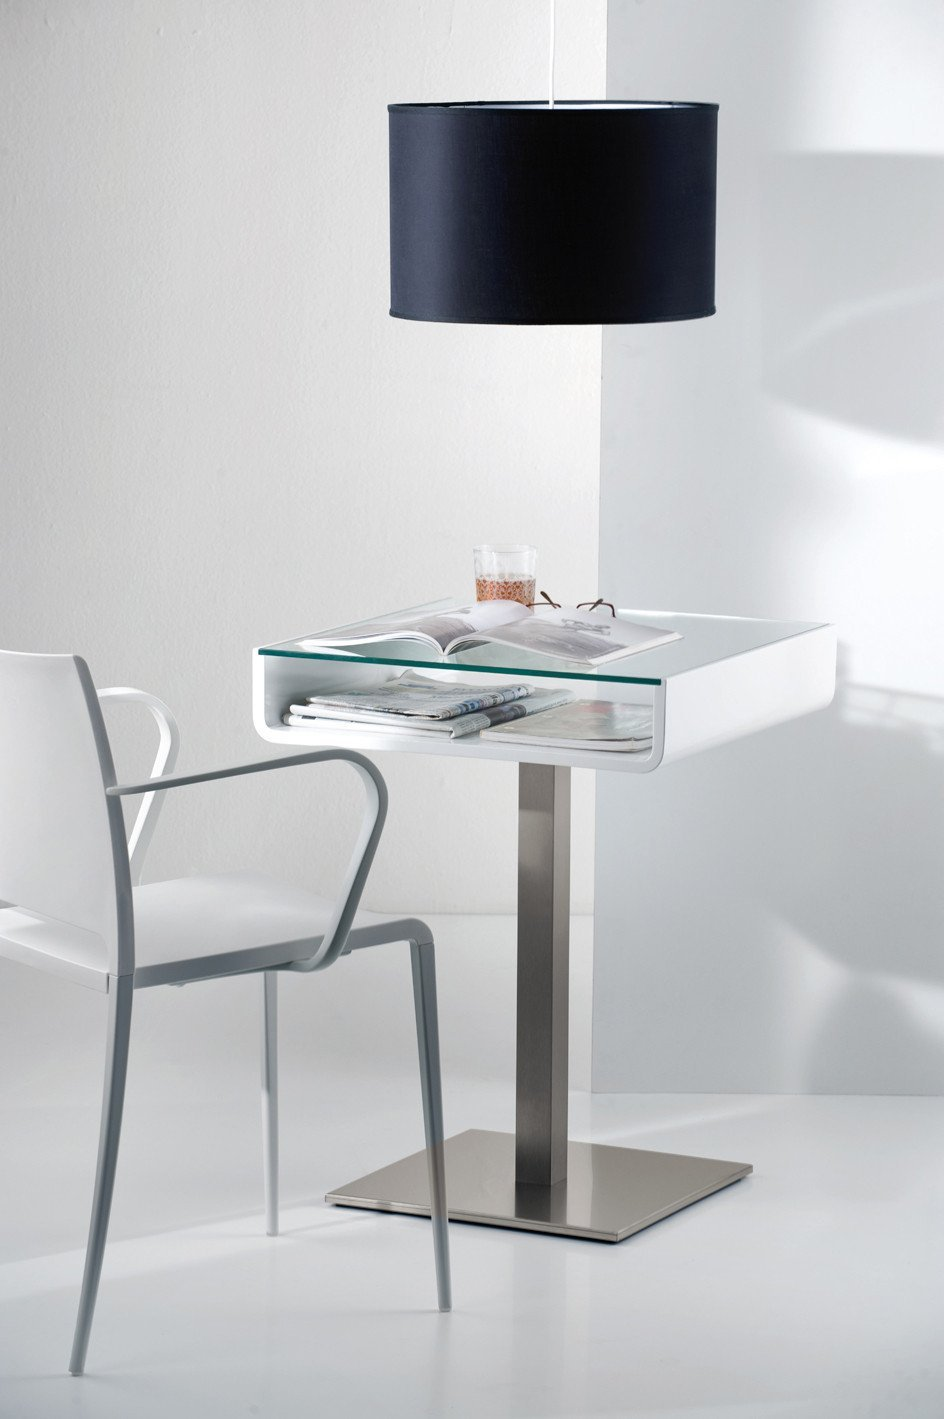 Inox 4402 Multifunctional Table-Pedrali-Contract Furniture Store